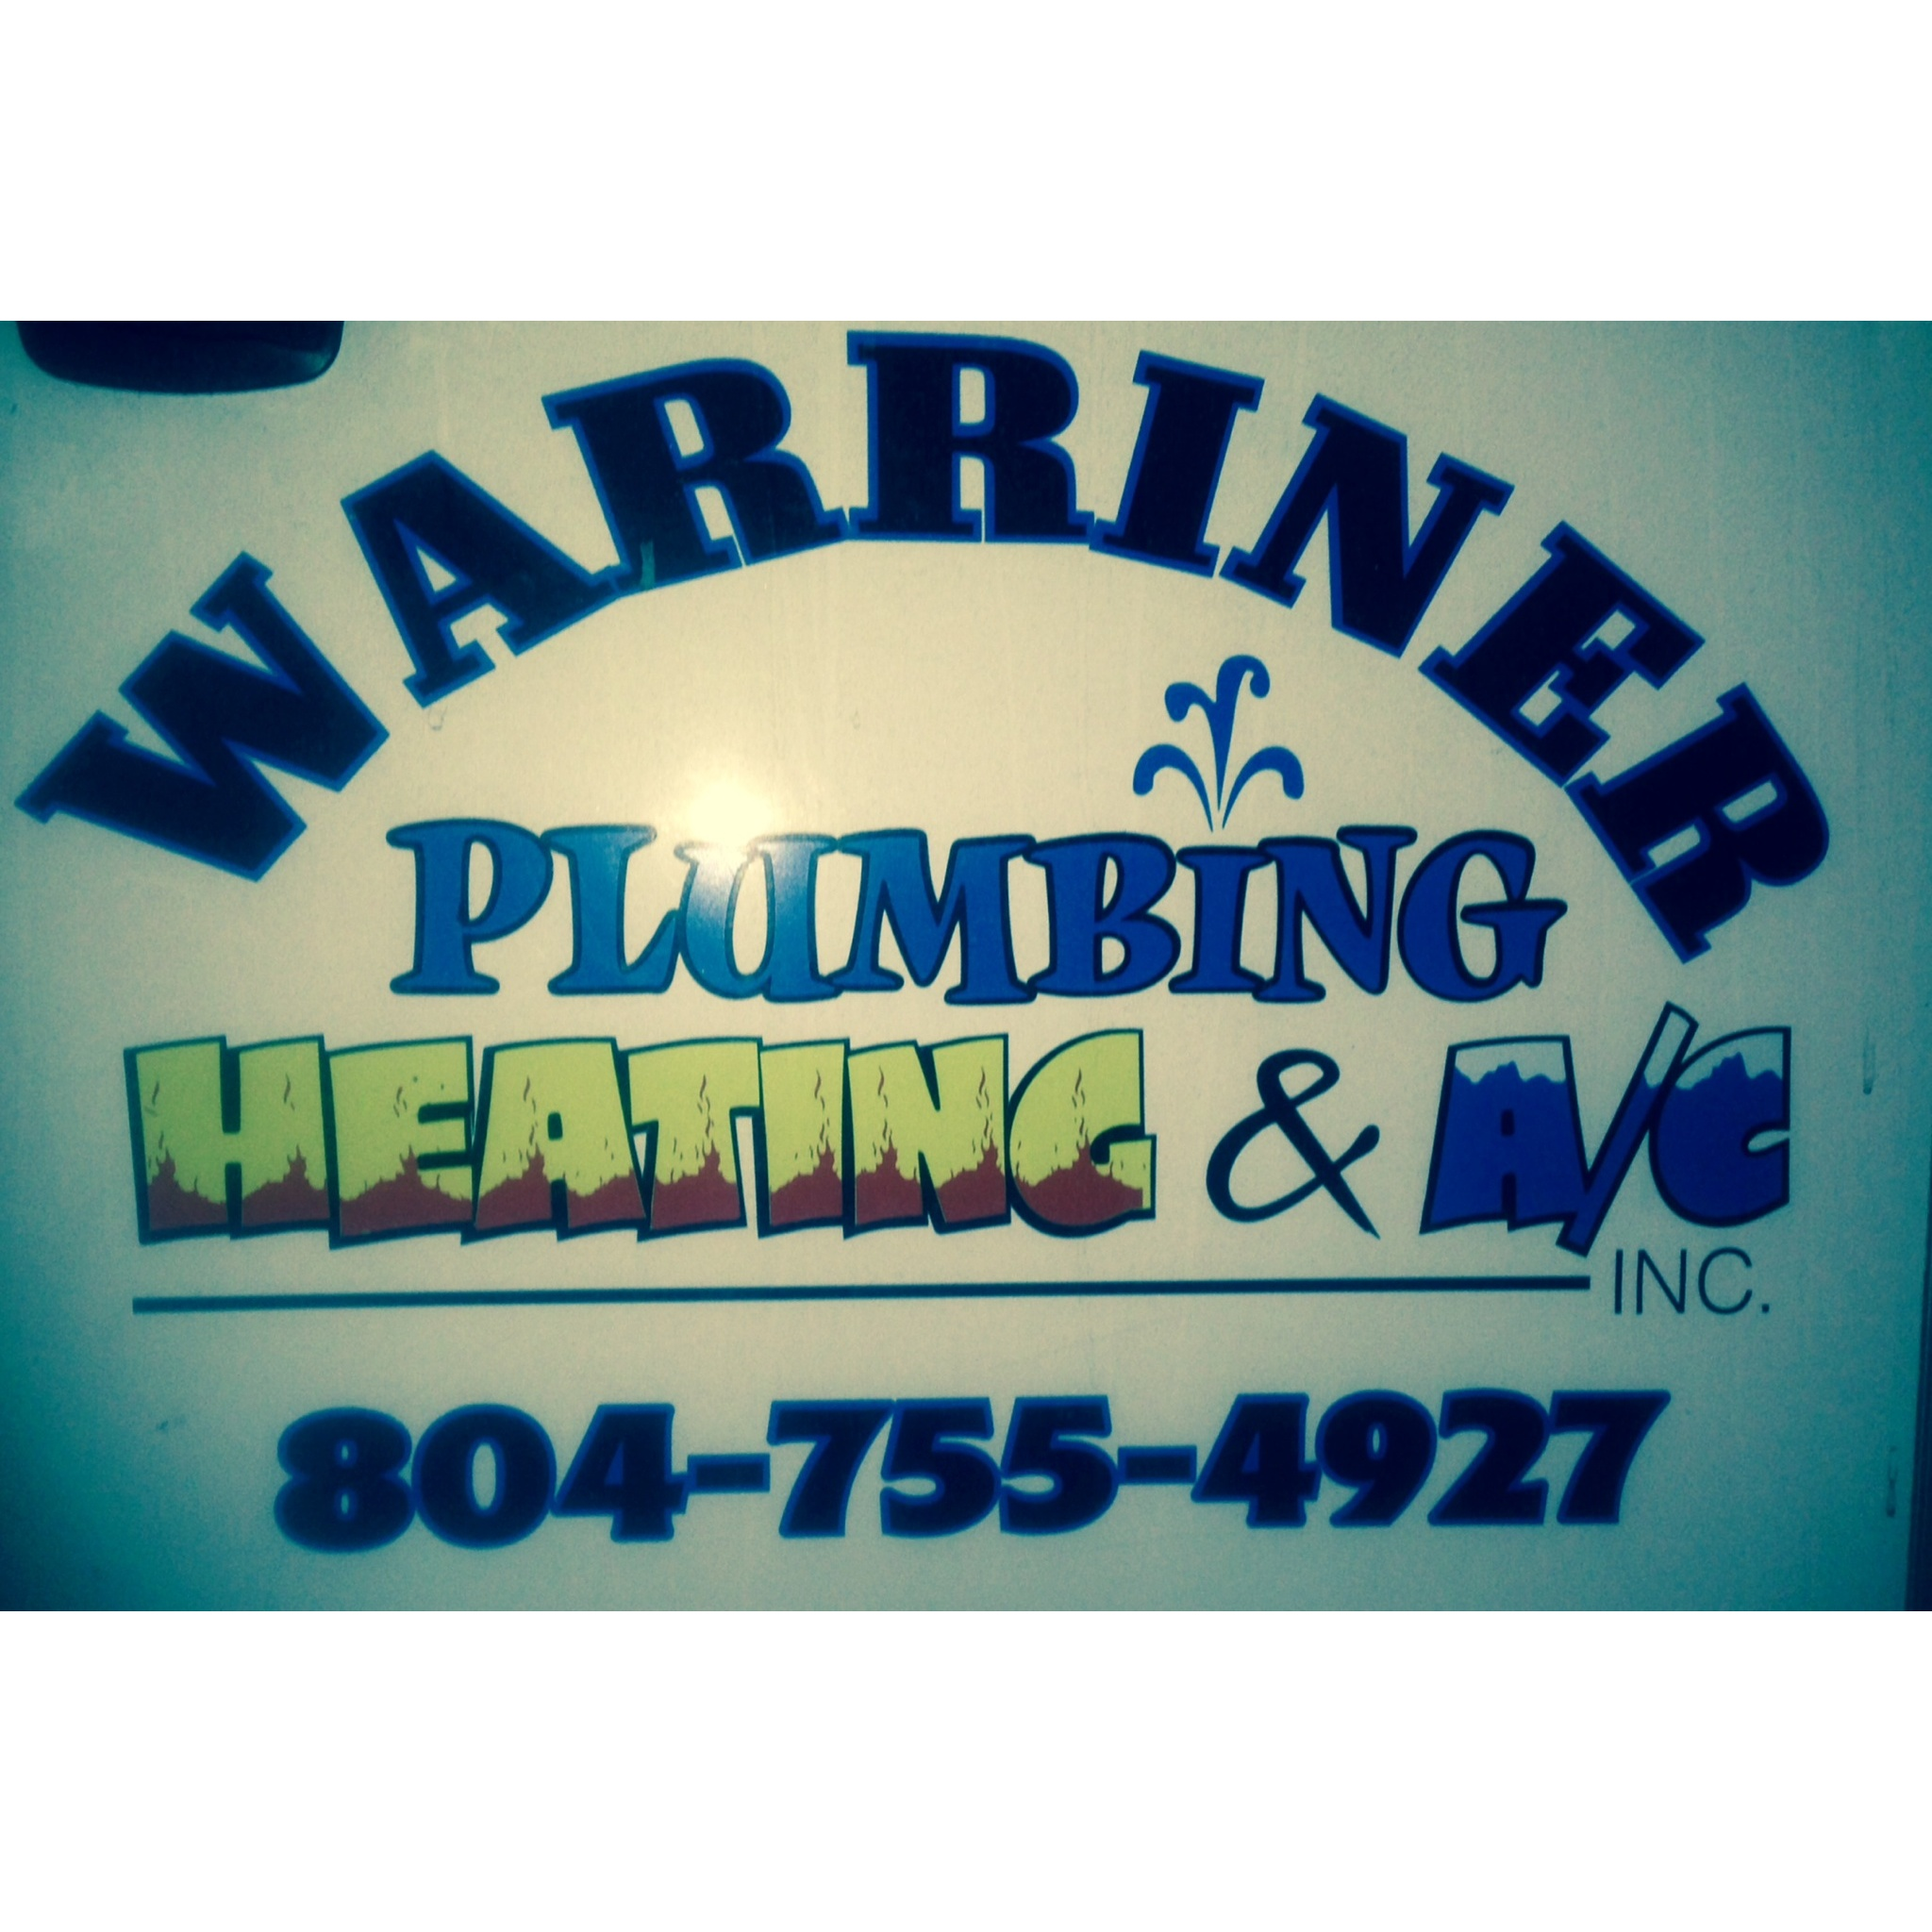 Warriner Plumbing, Heating & Air Conditioning, Inc,